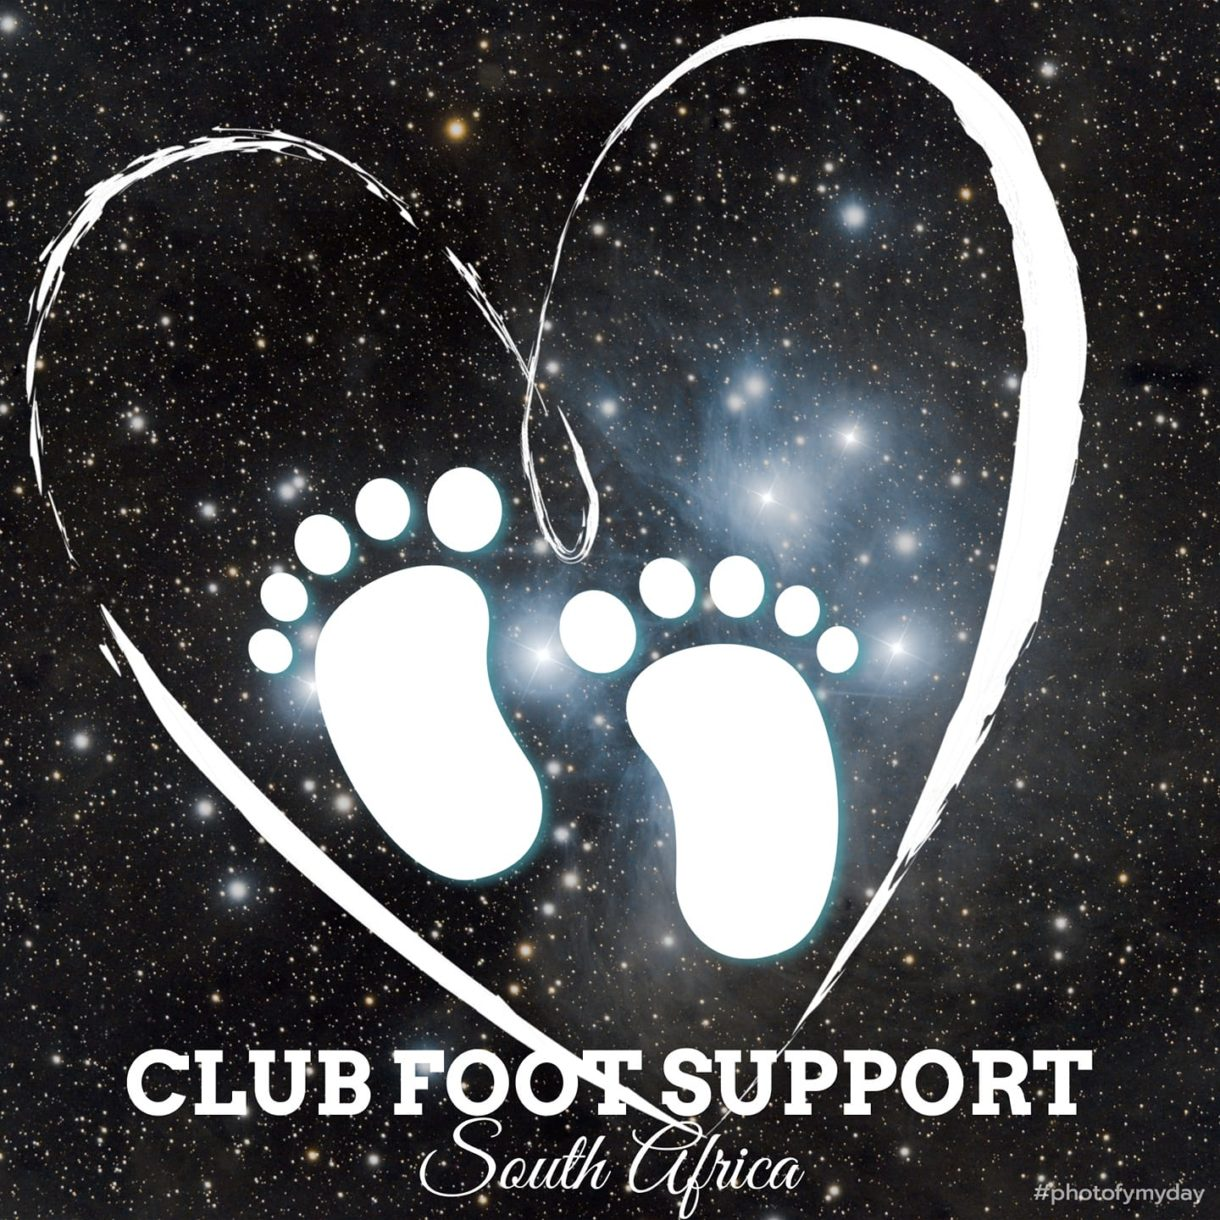 Club Foot Support South Africa